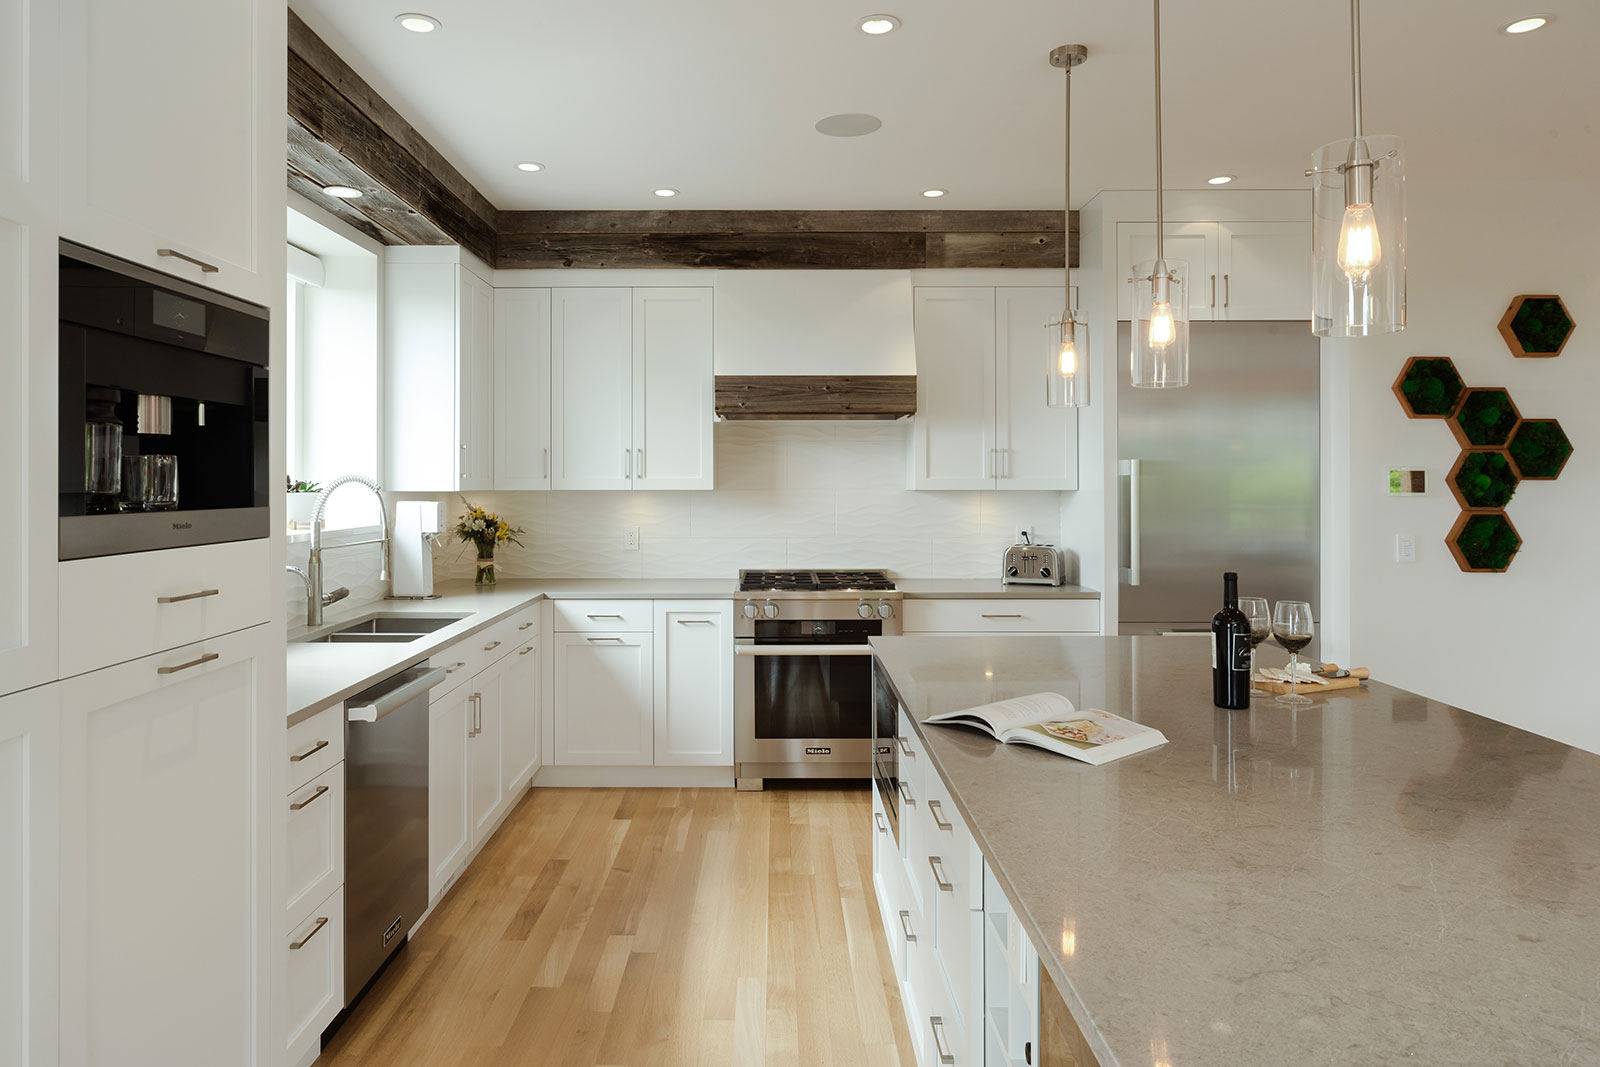 Nickel S Cabinets Home